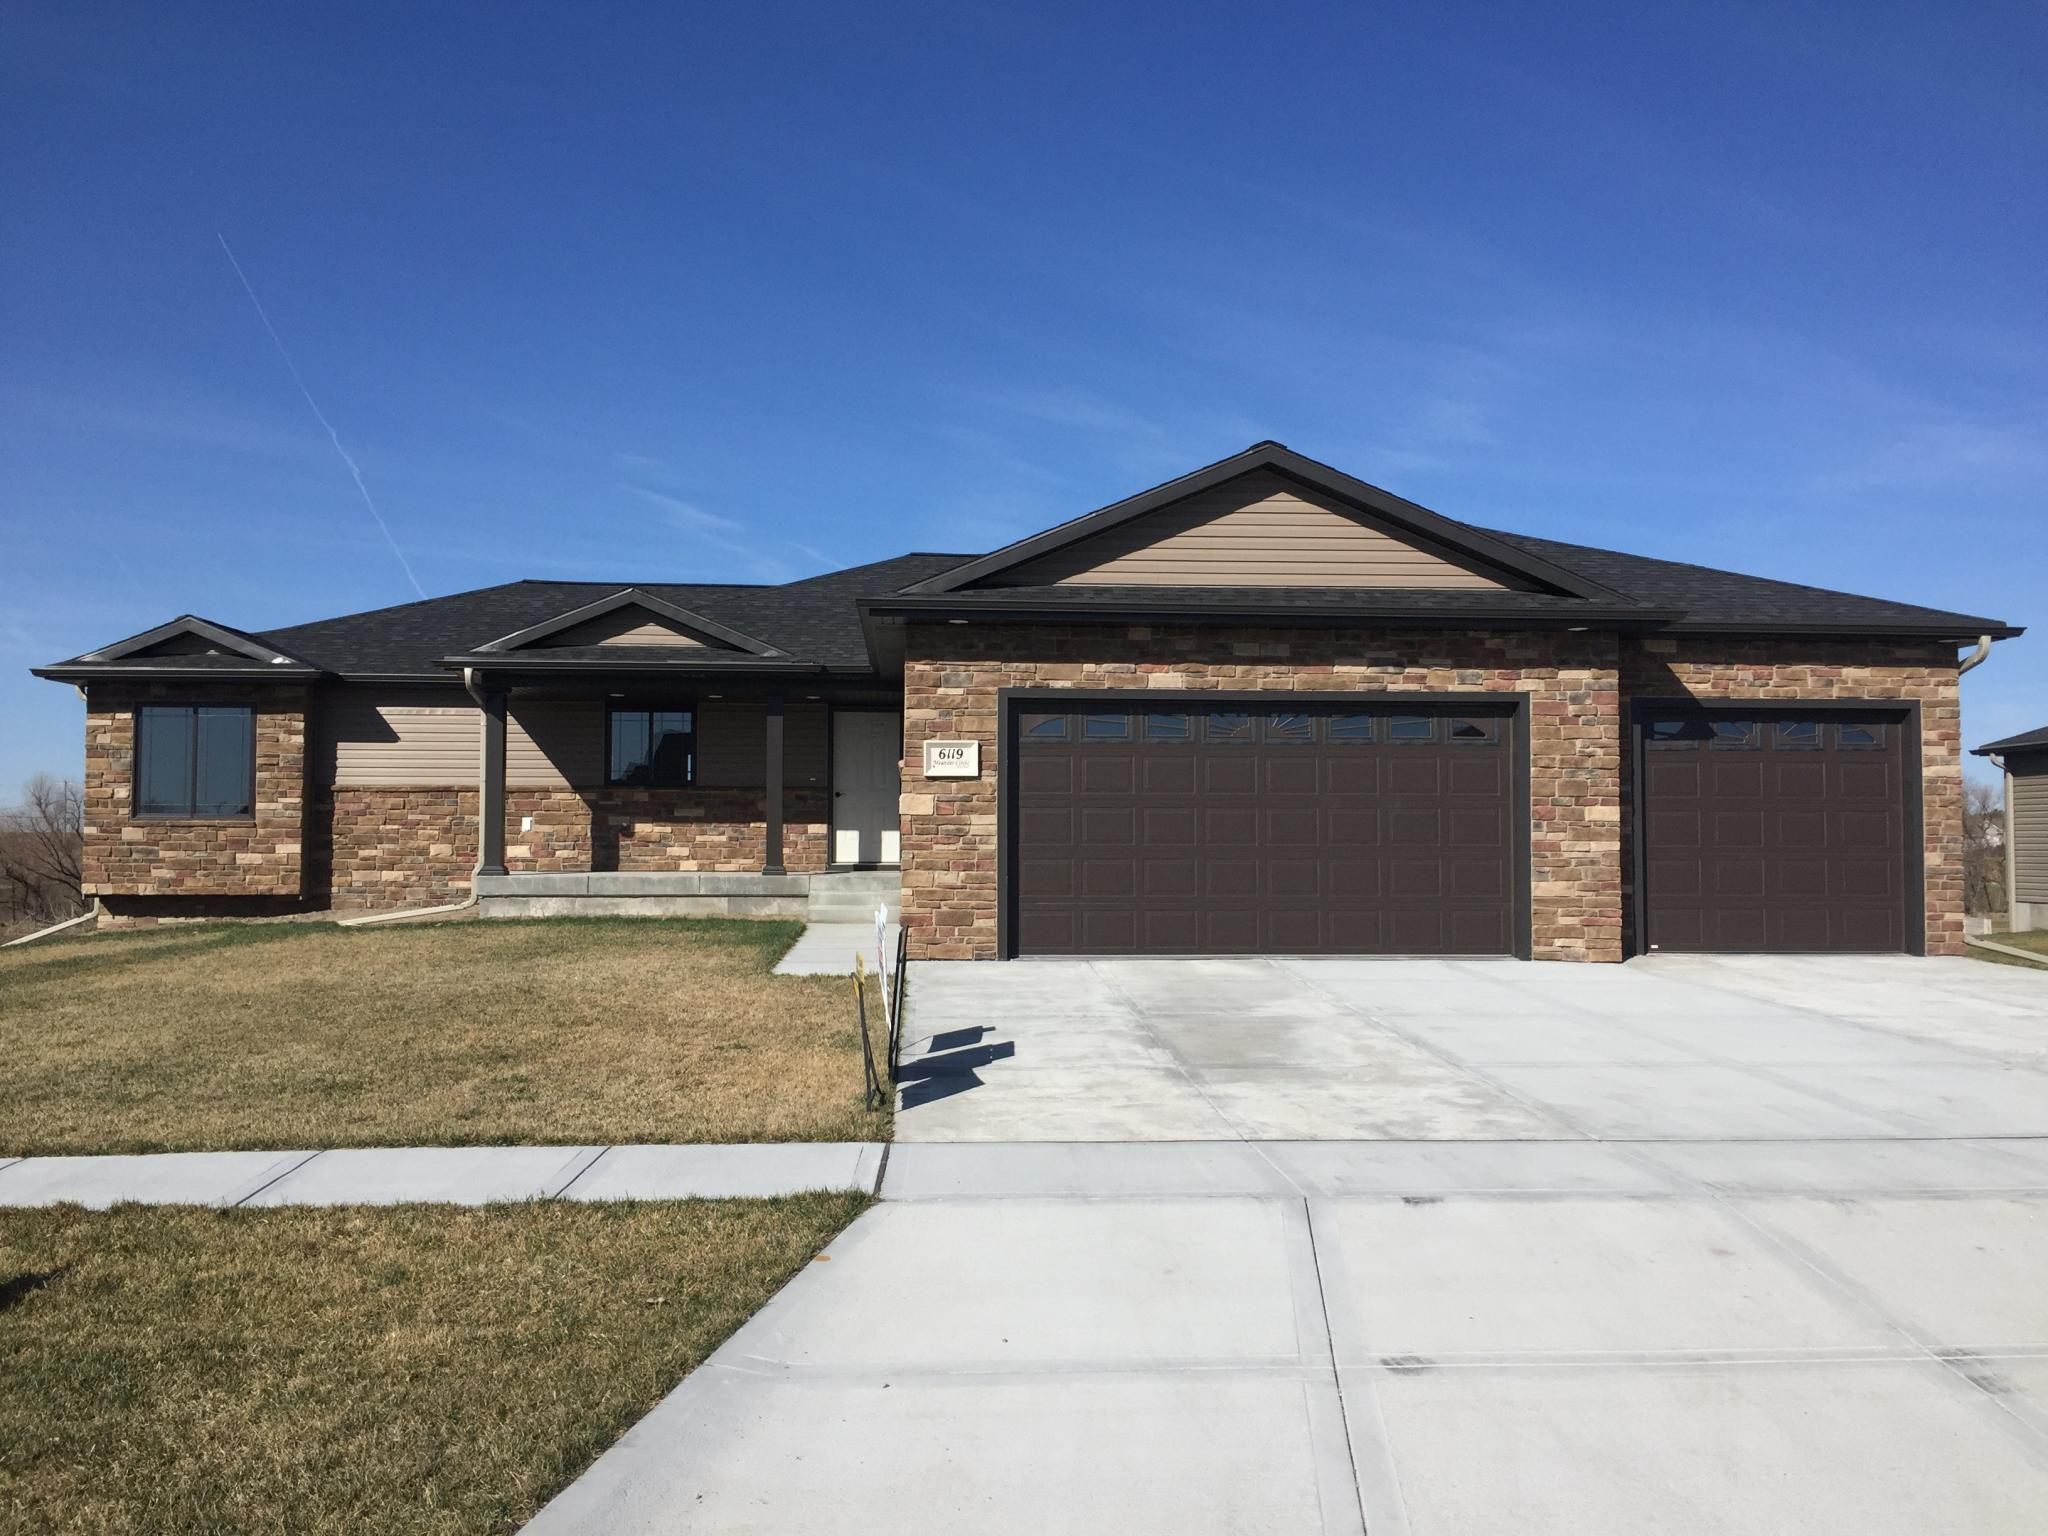 Nebraska adams county ayr 68925 - 6119 Meander Cir